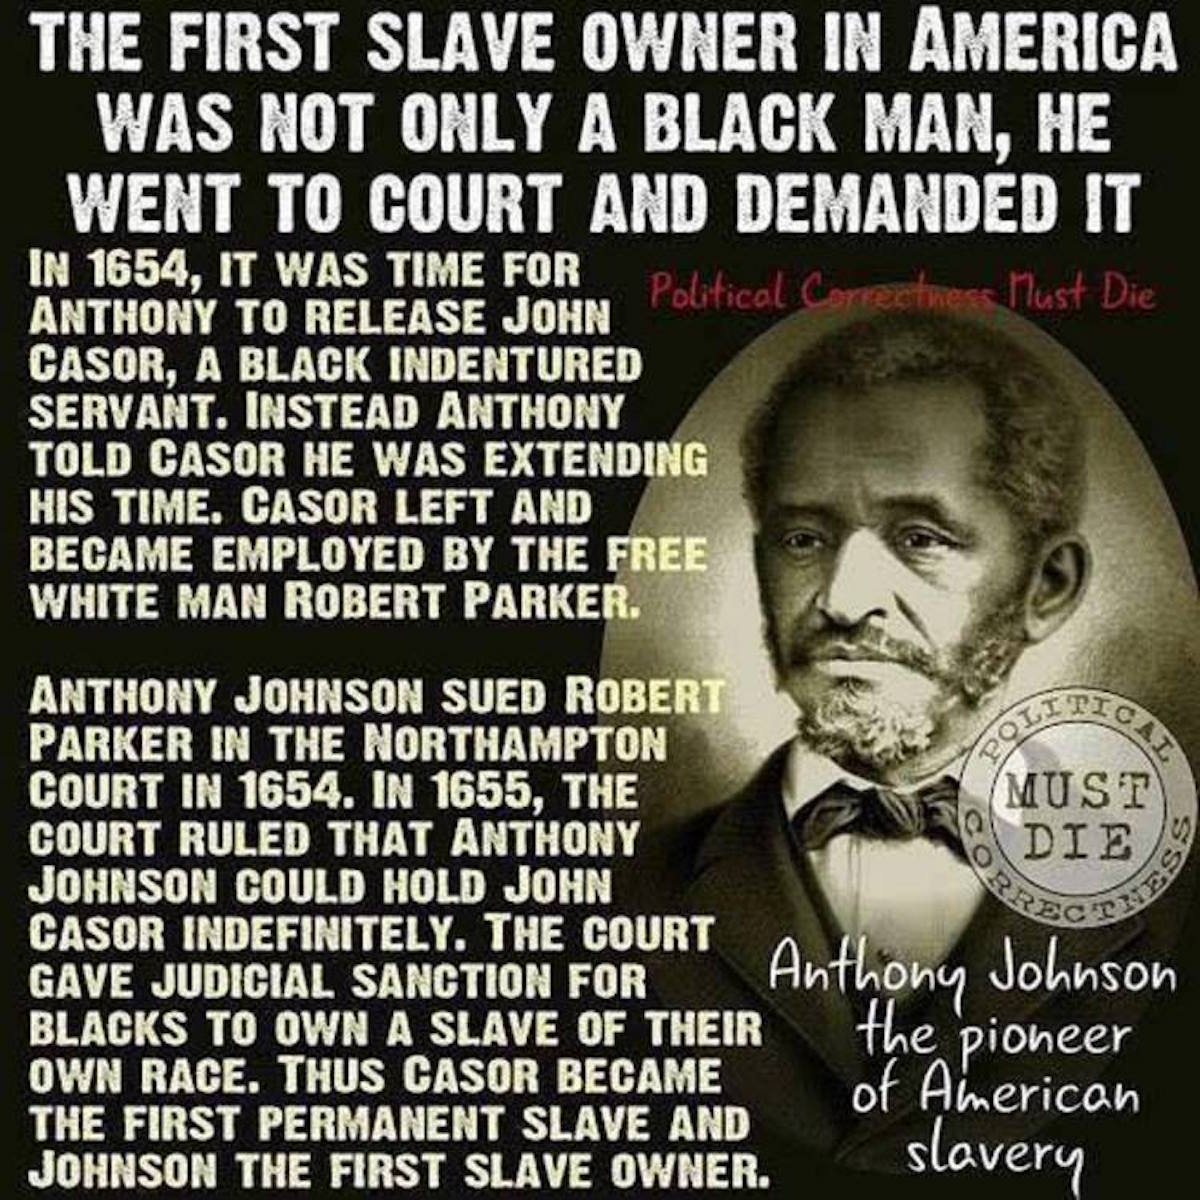 LIBERAL HEADS WOULD EXPLODE If They Knew This About The First American Slave Owner!